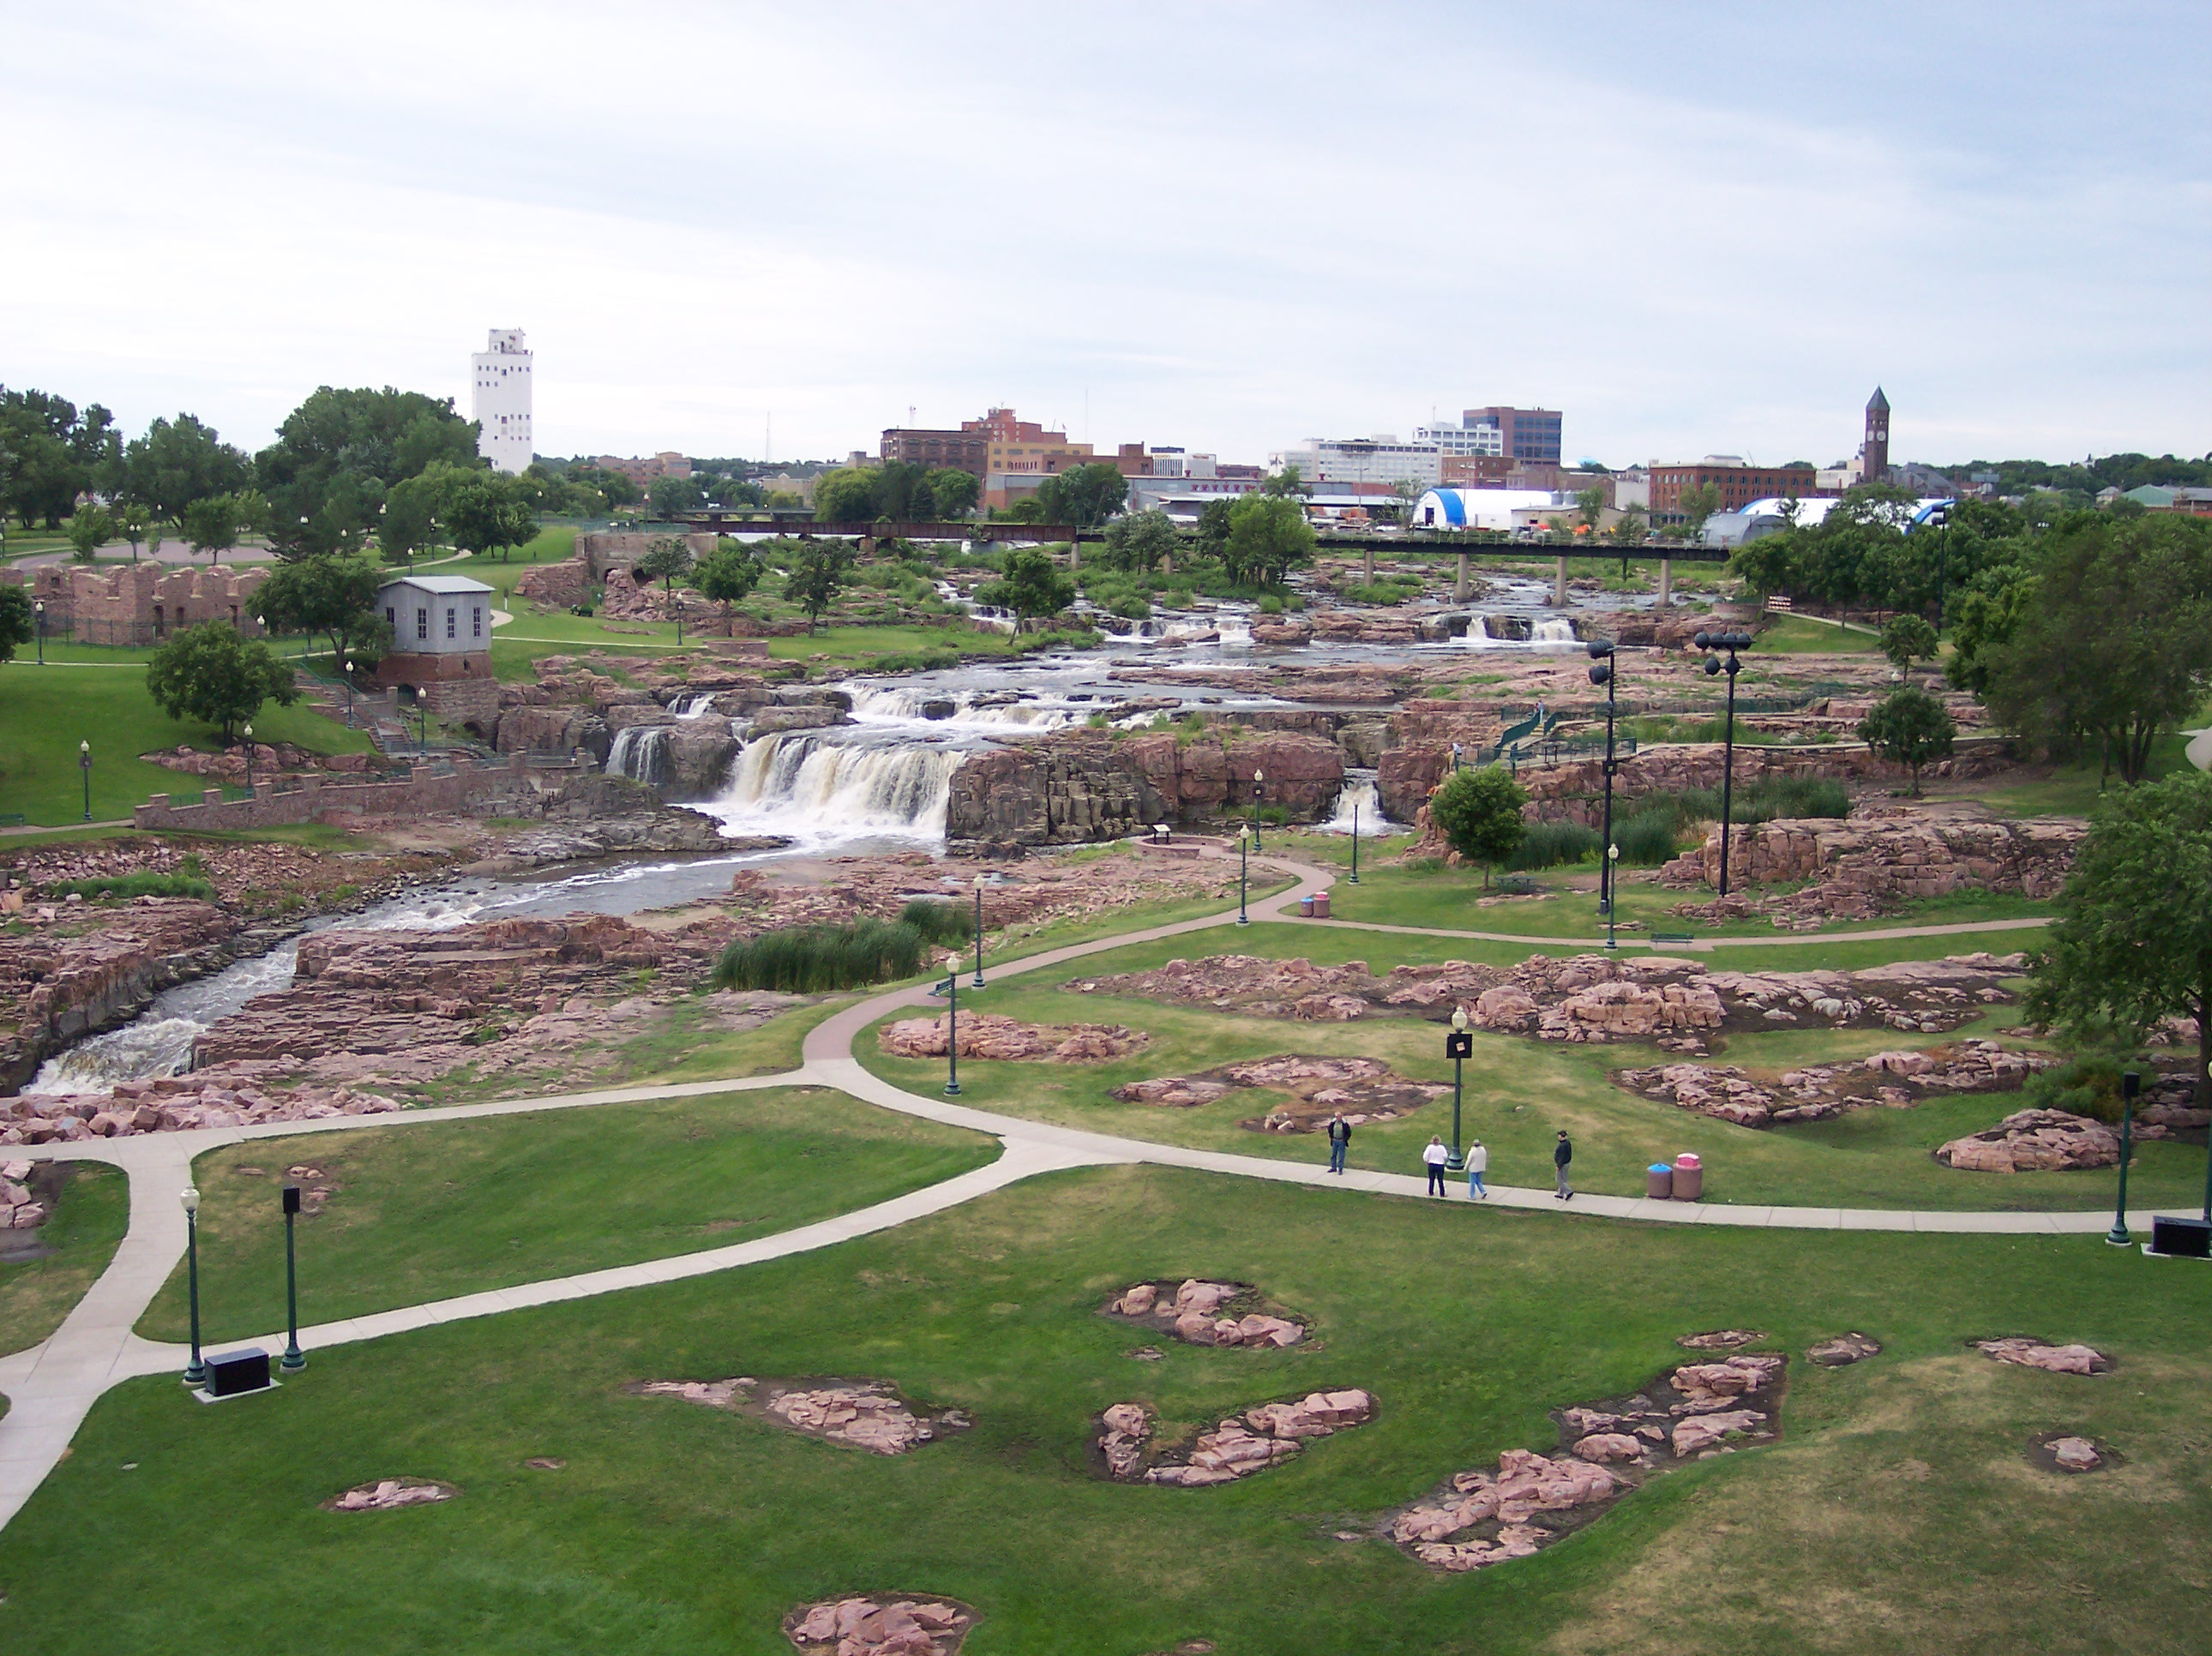 dating services in sioux falls sd Sioux falls social singles group for singles 40+ sioux falls social singles - about us we provide social activities and a welcoming atmosphere for singles over 40.